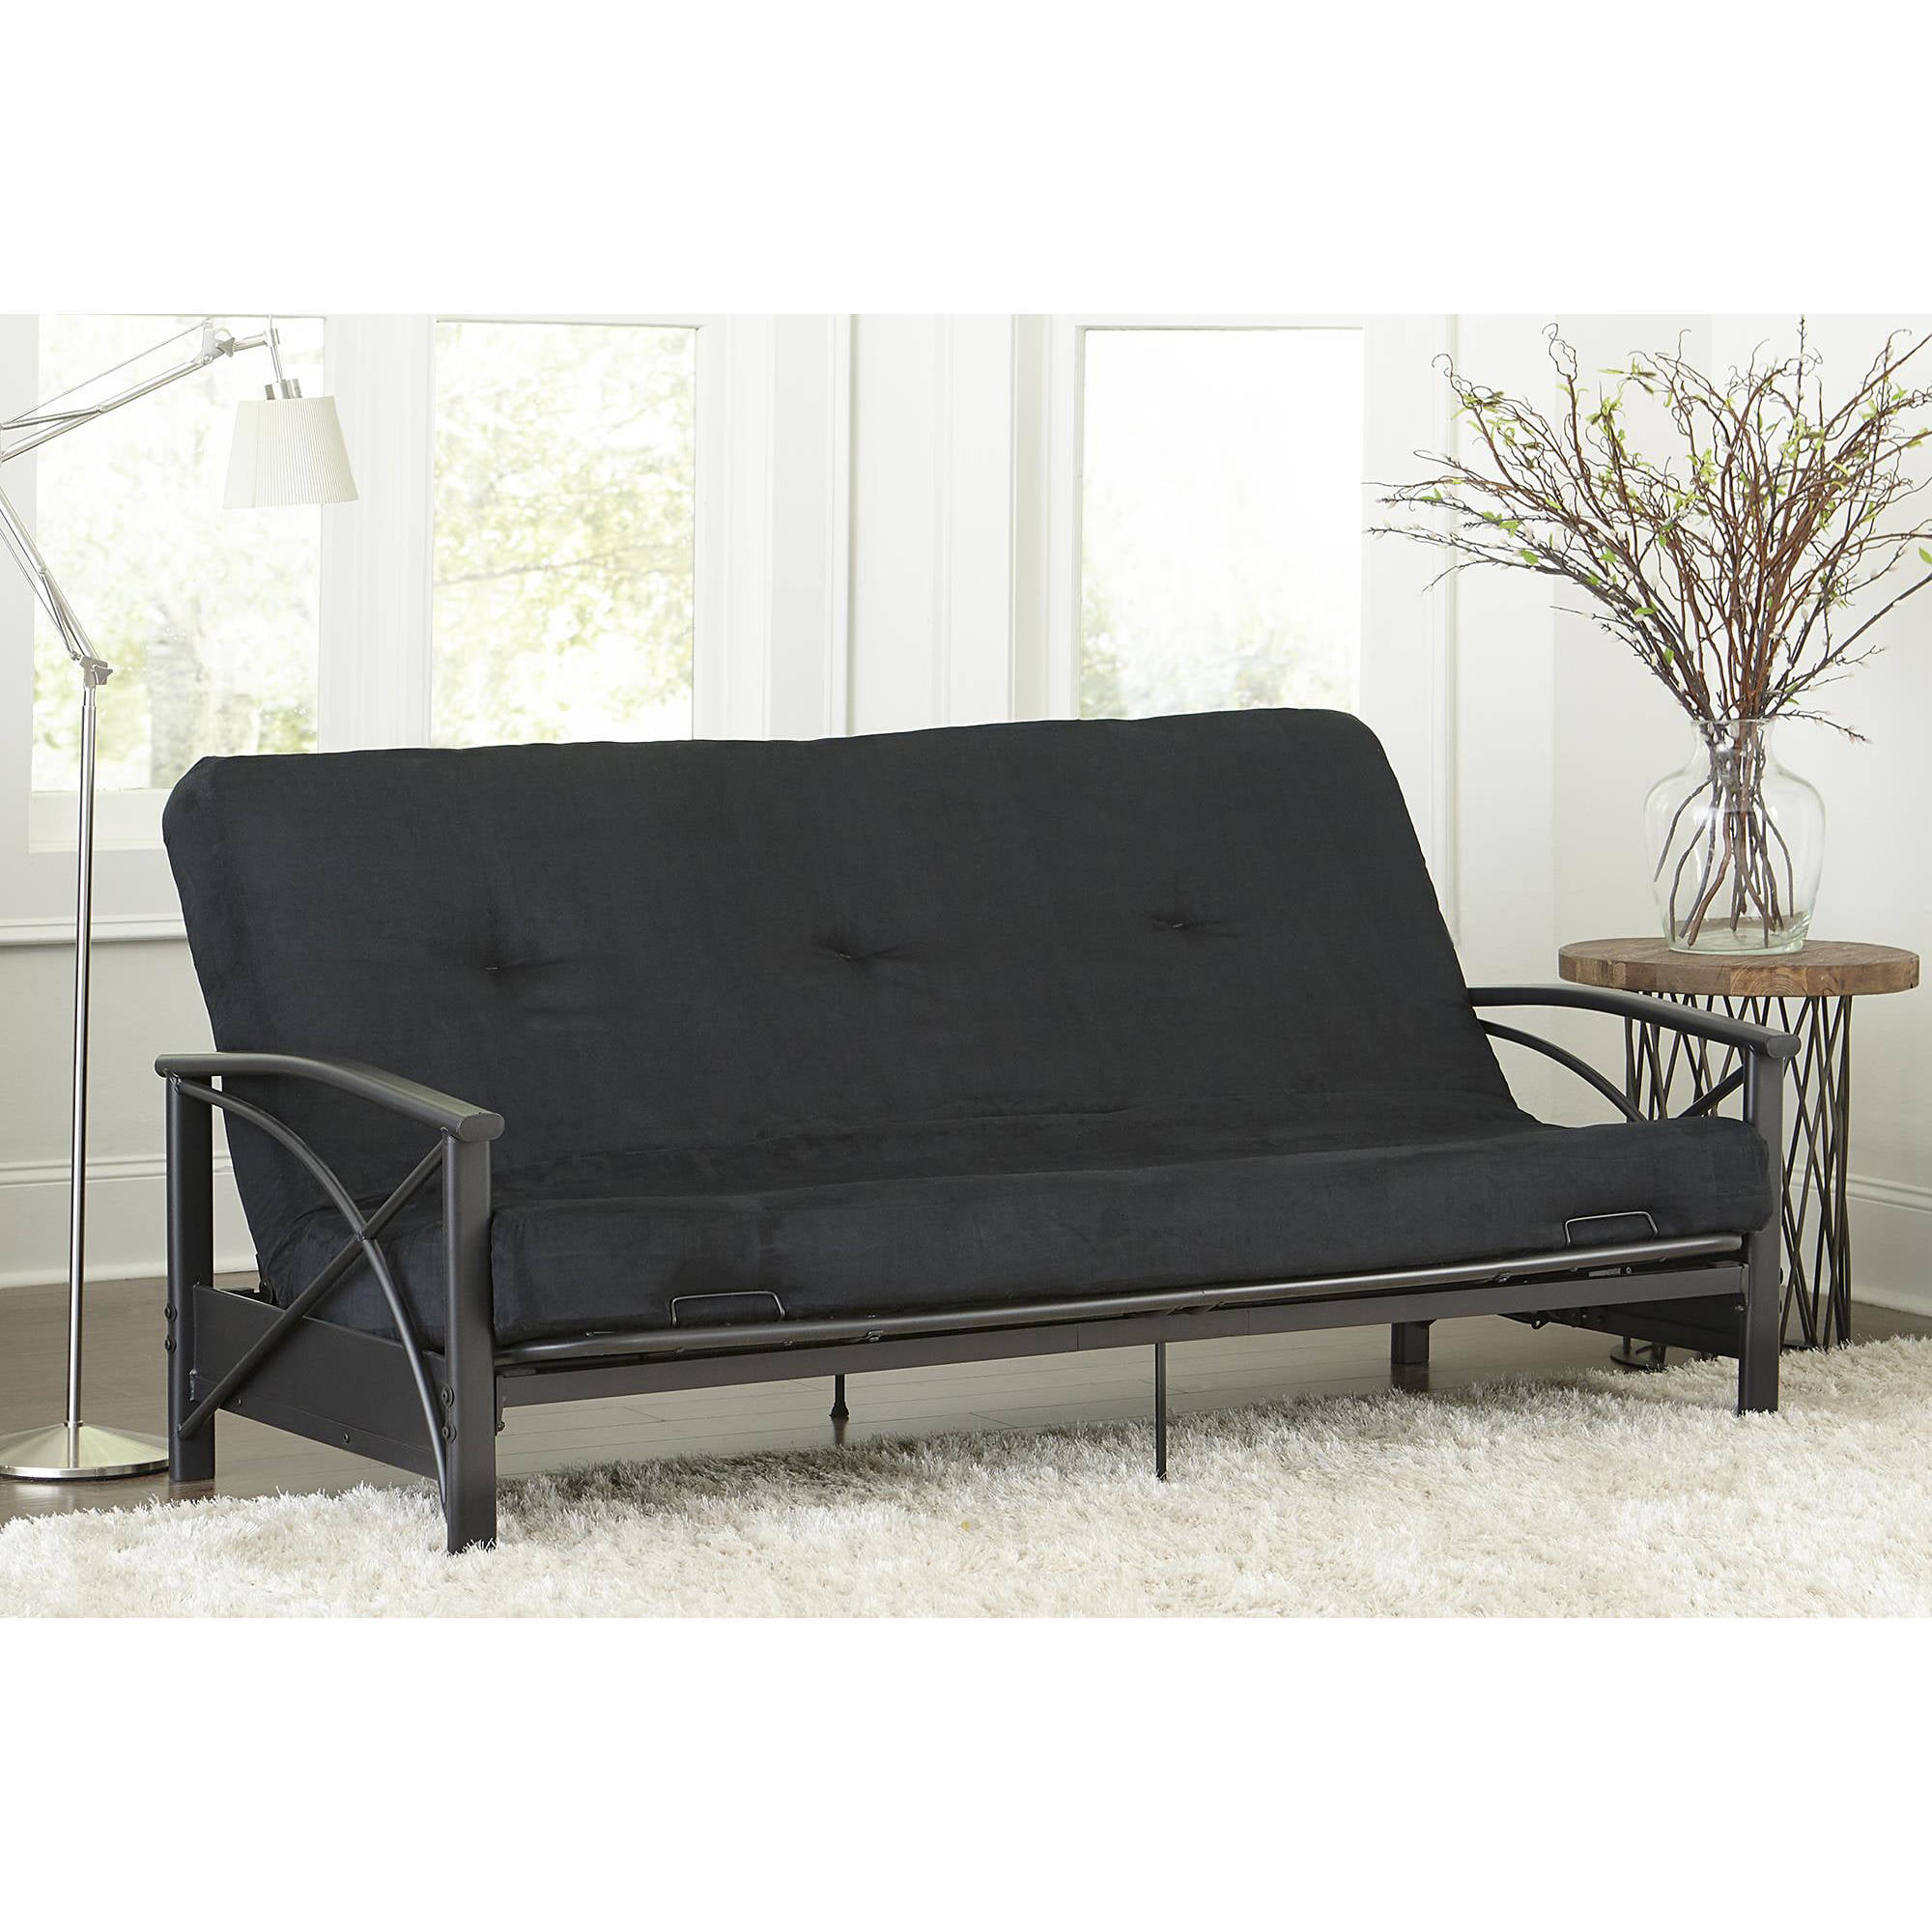 pdp reviews monarch futons furniture wayfair for convertible ca sofa less inc specialties